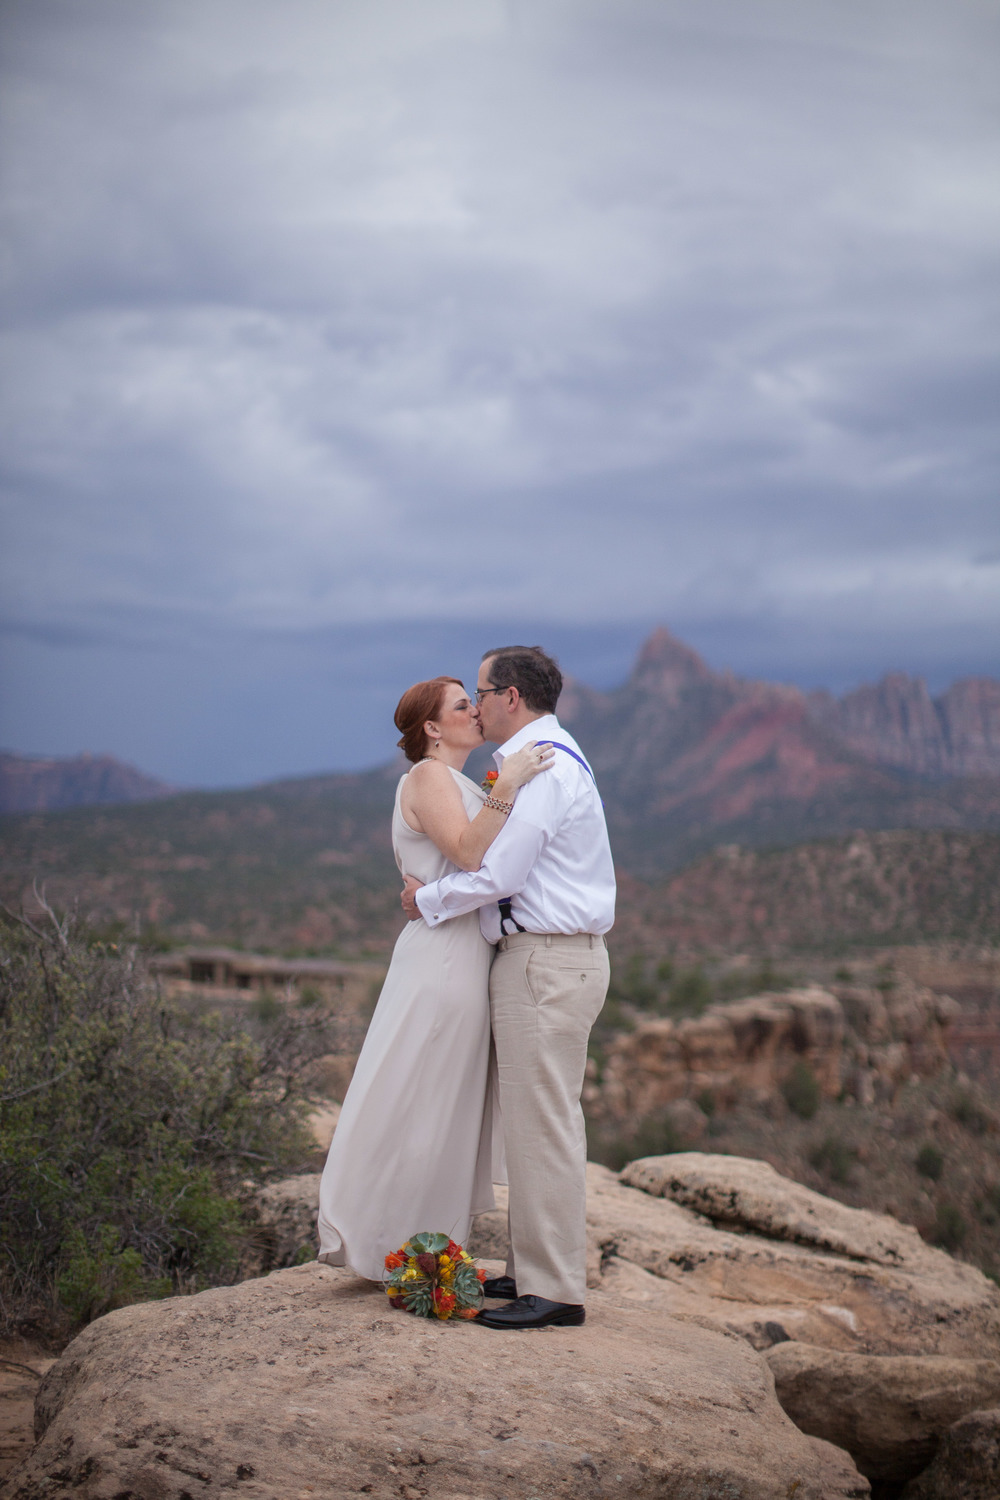 ReschlyWeddingZionNationPark2013 (128 of 235).jpg